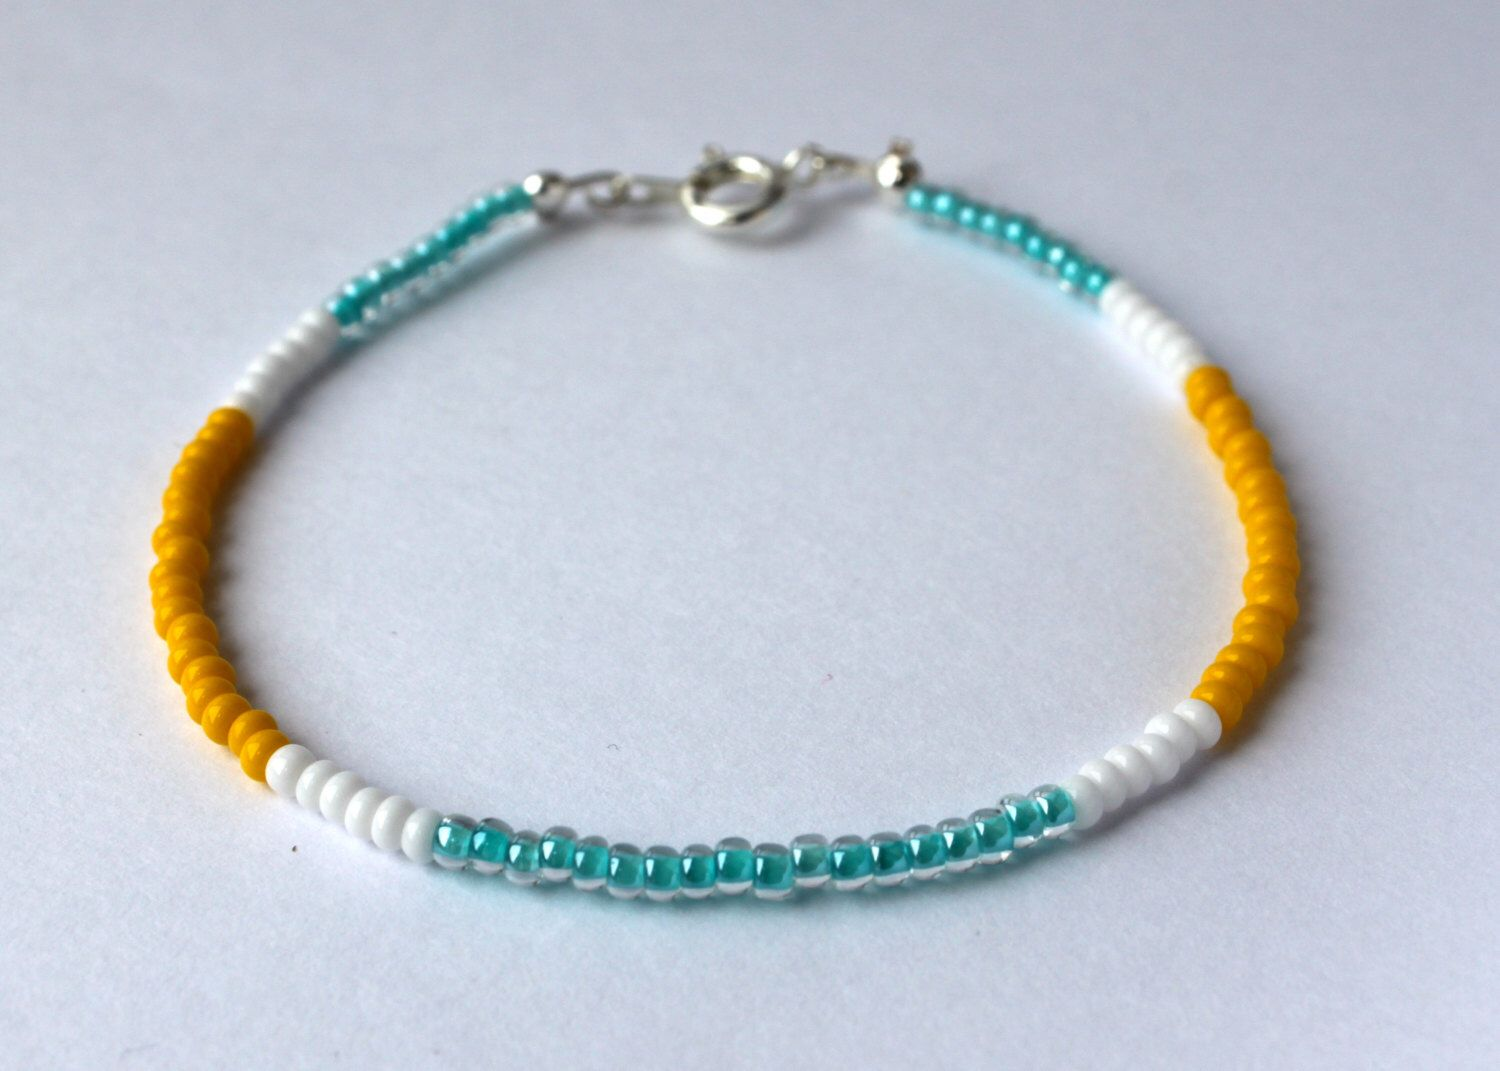 Seed Bead Bracelet-Turquoise-White-Yellow | a color story ...